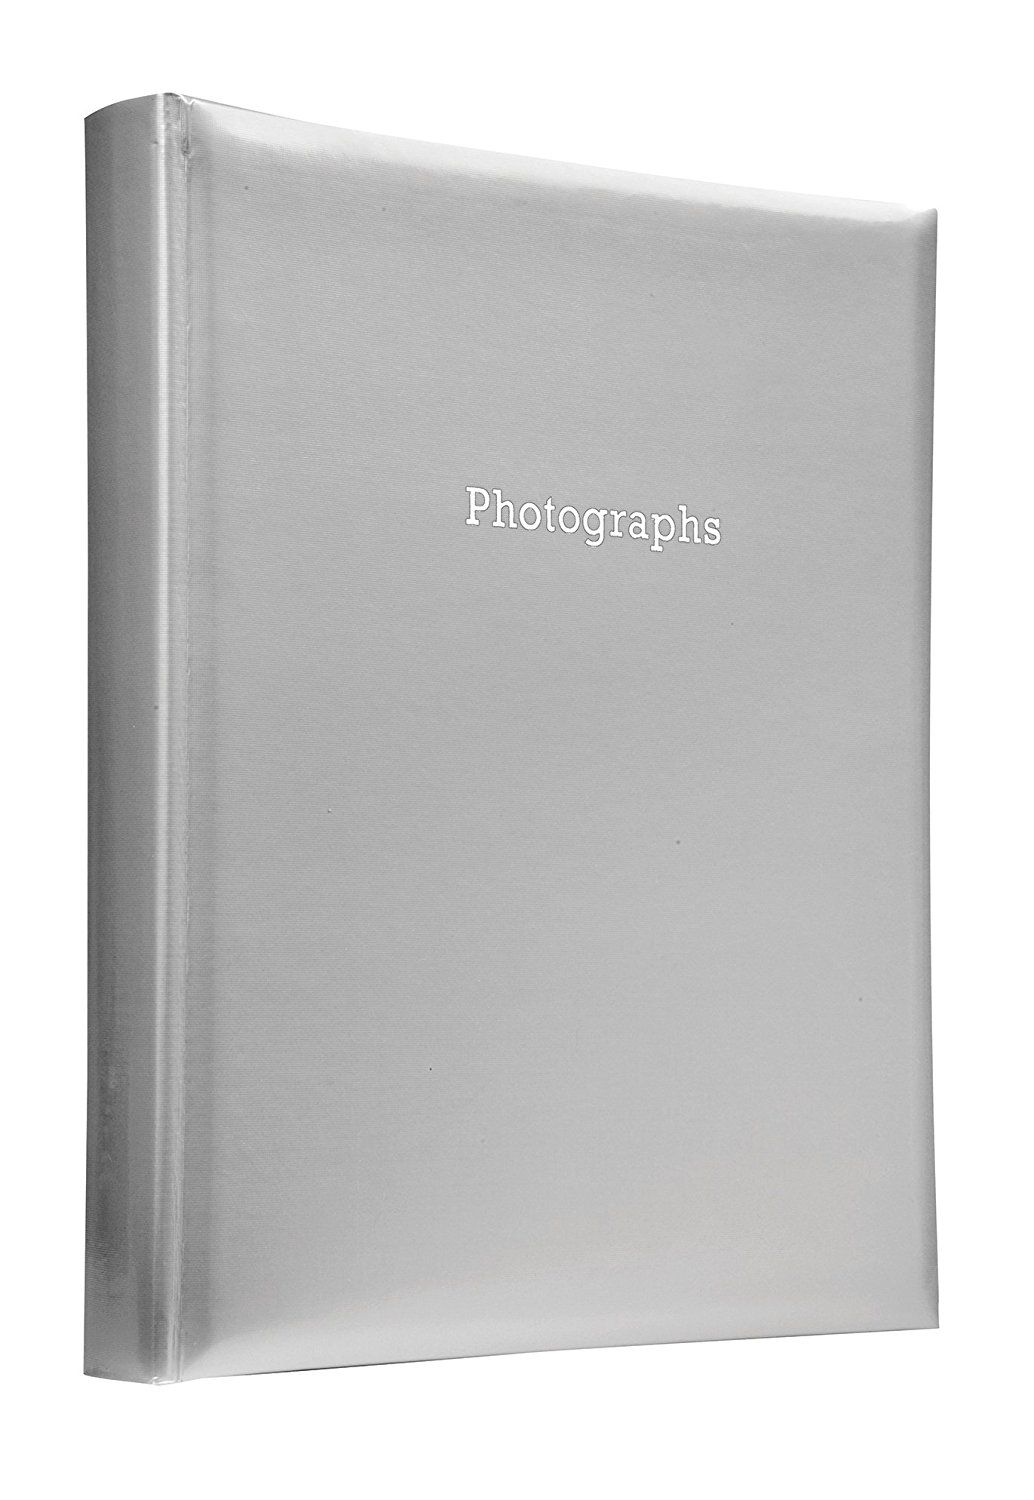 Deluxe Large Silver Self Adhesive Photo Album Hold Various Sized